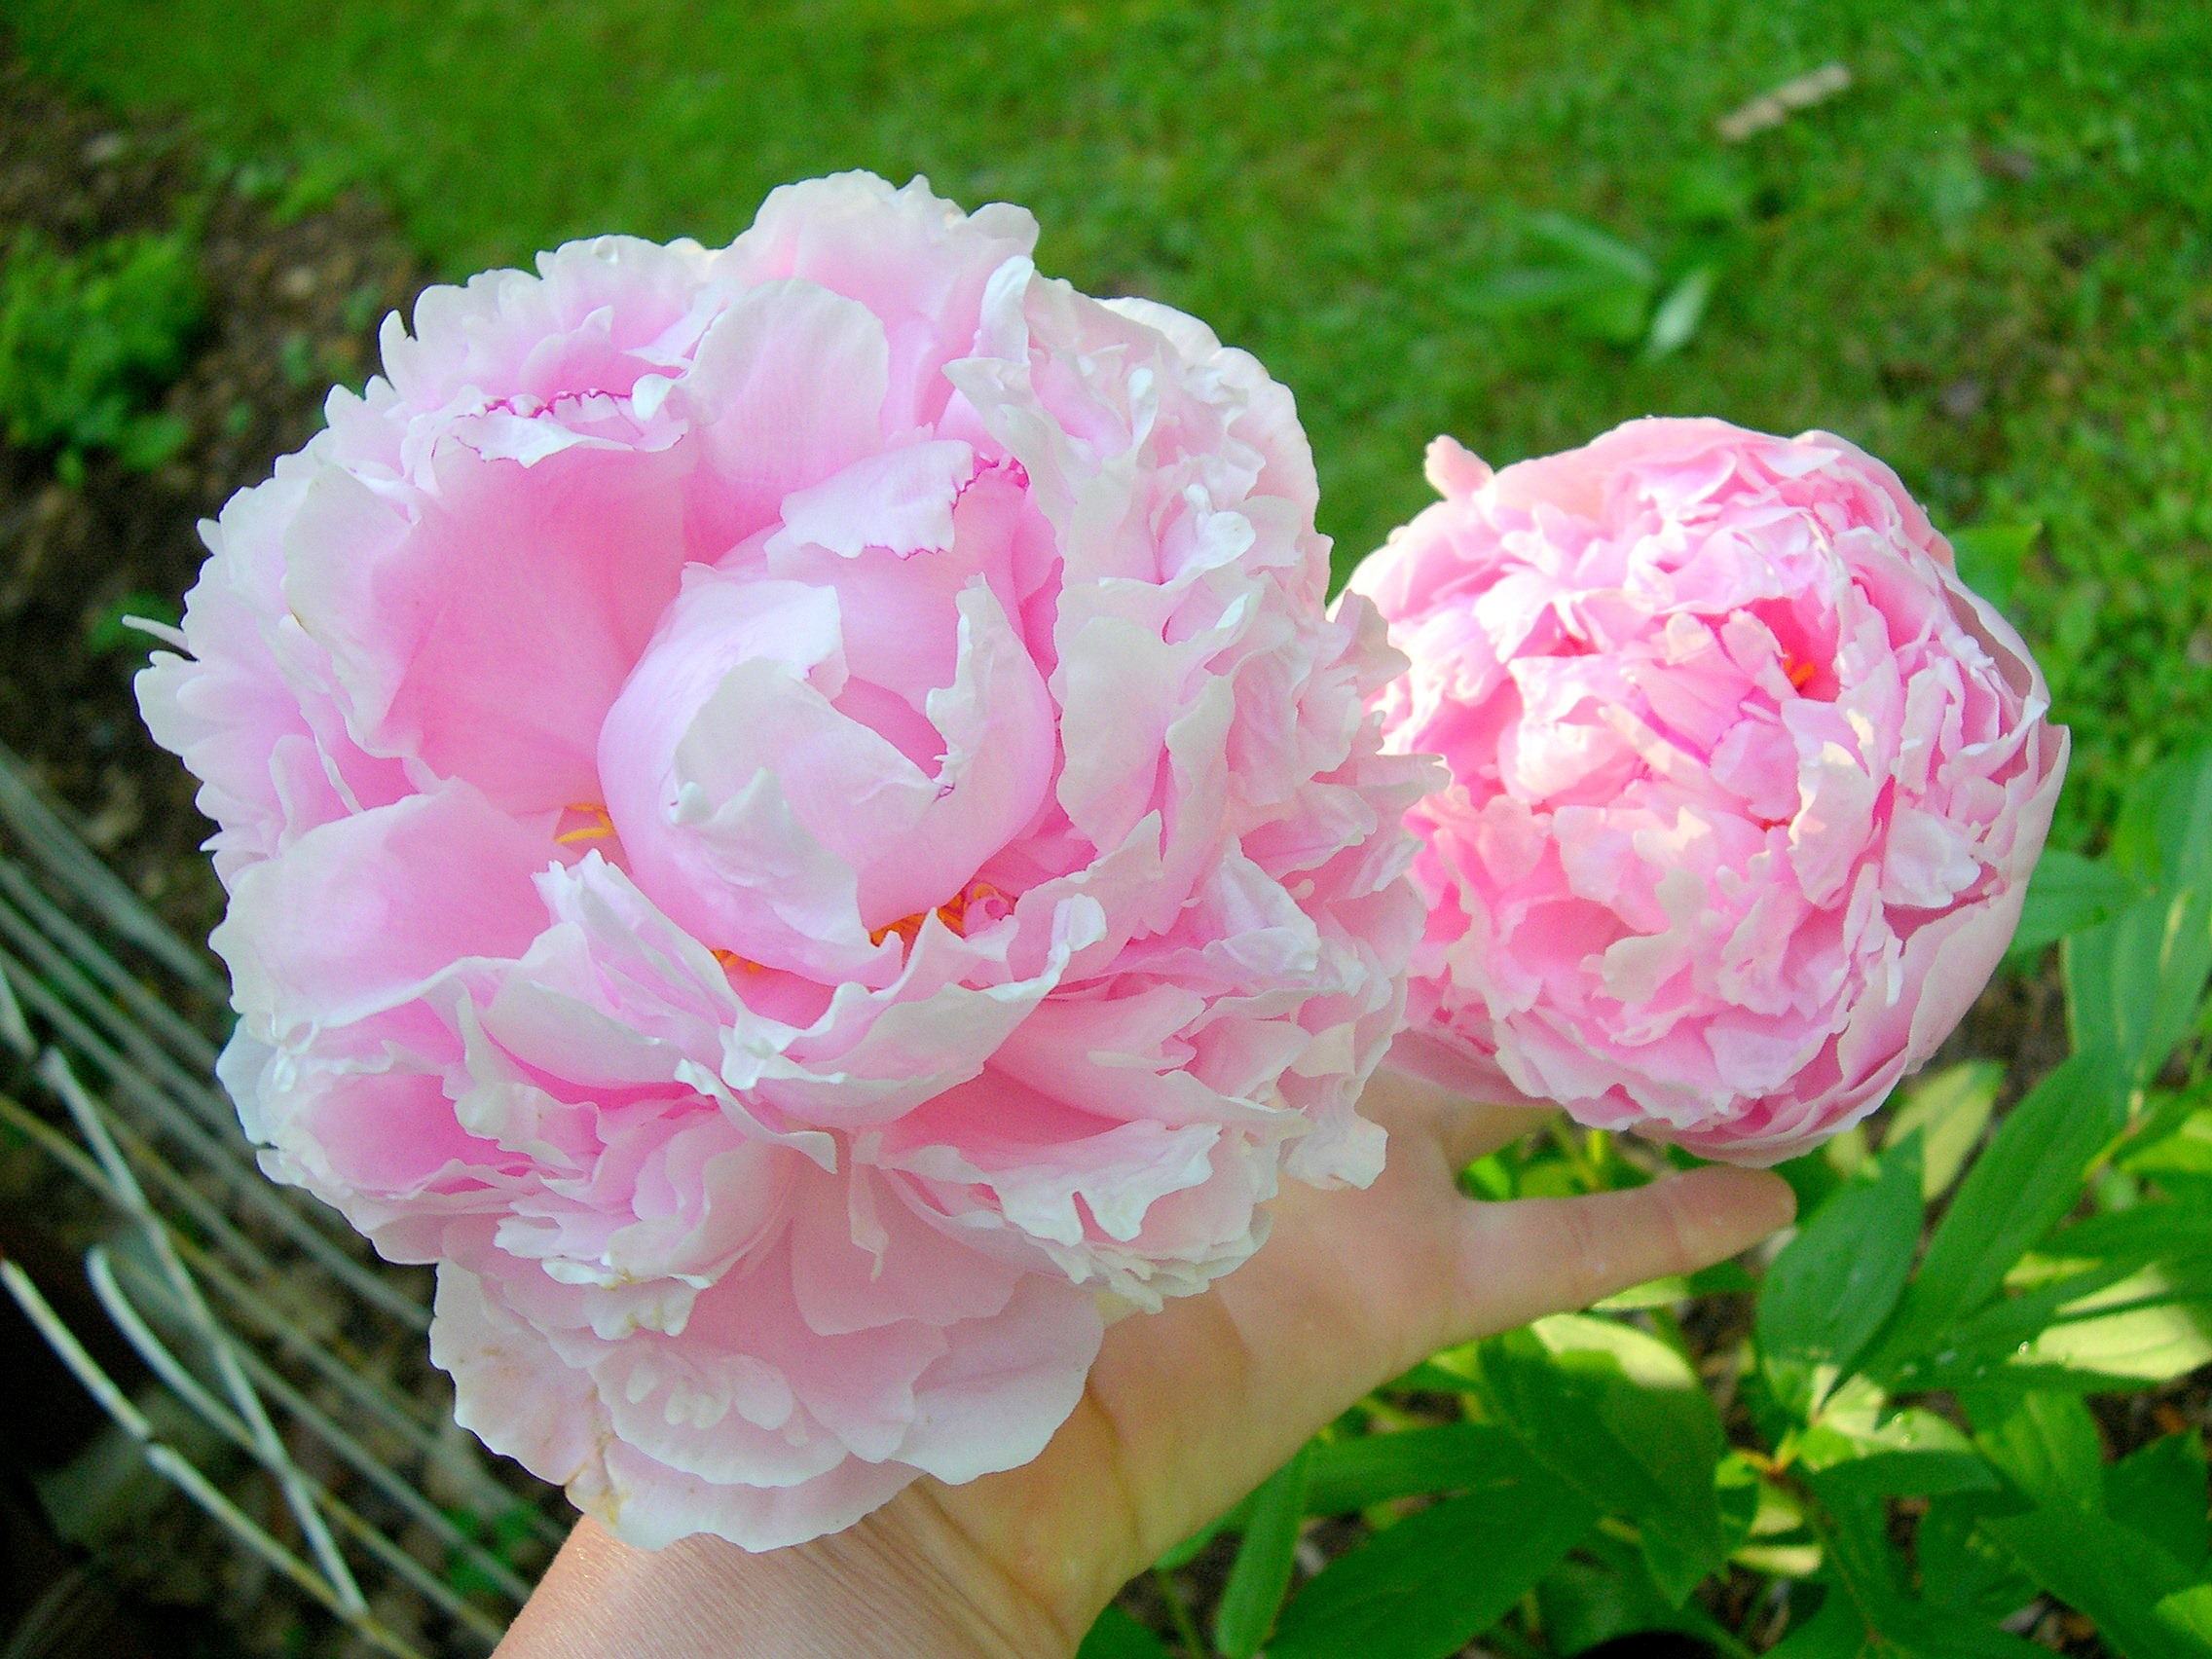 Pink peonies and other flowers from long ago new englands narrow road pink peony remember flowers mightylinksfo Gallery